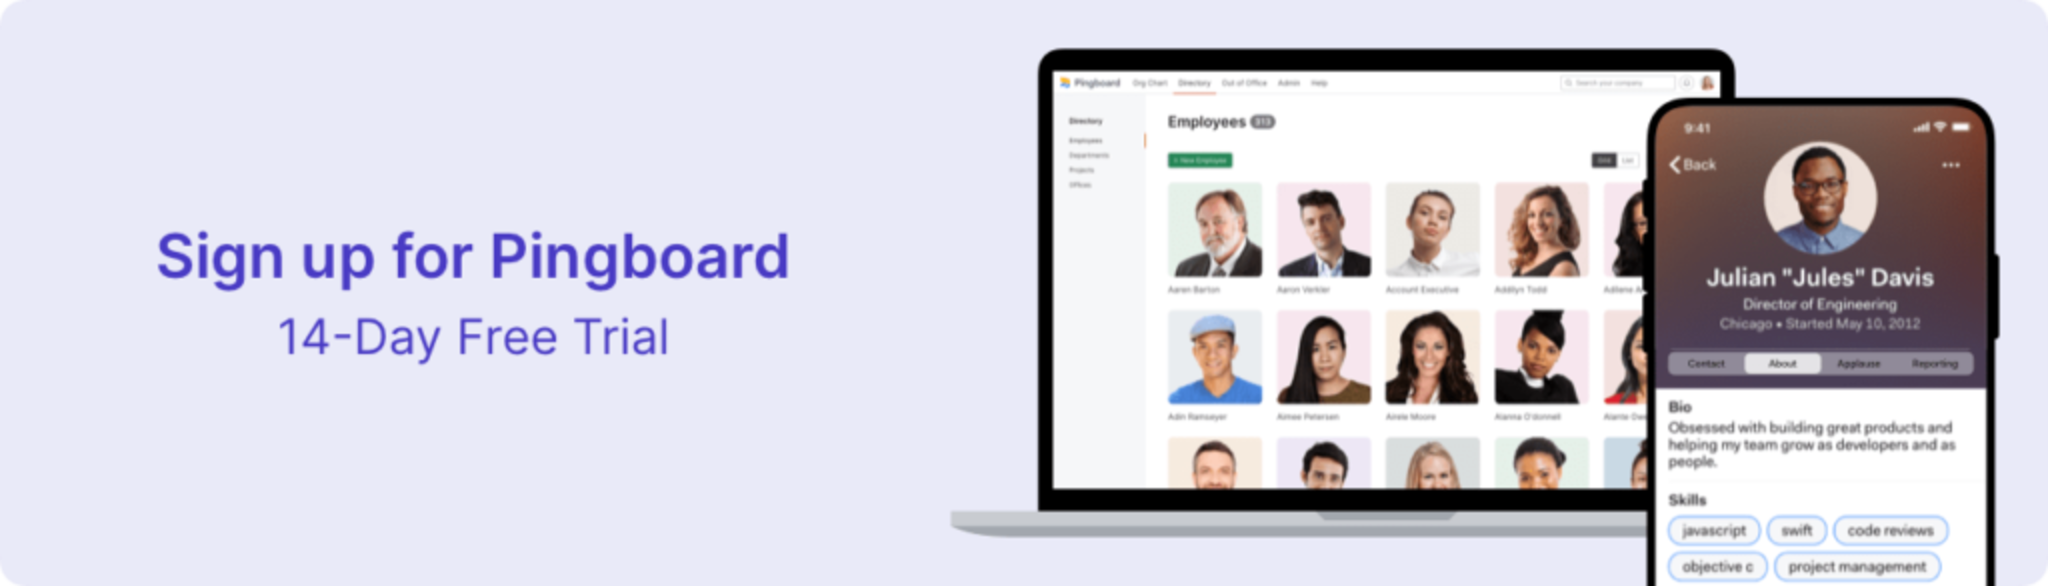 Employee Directory Free Trial